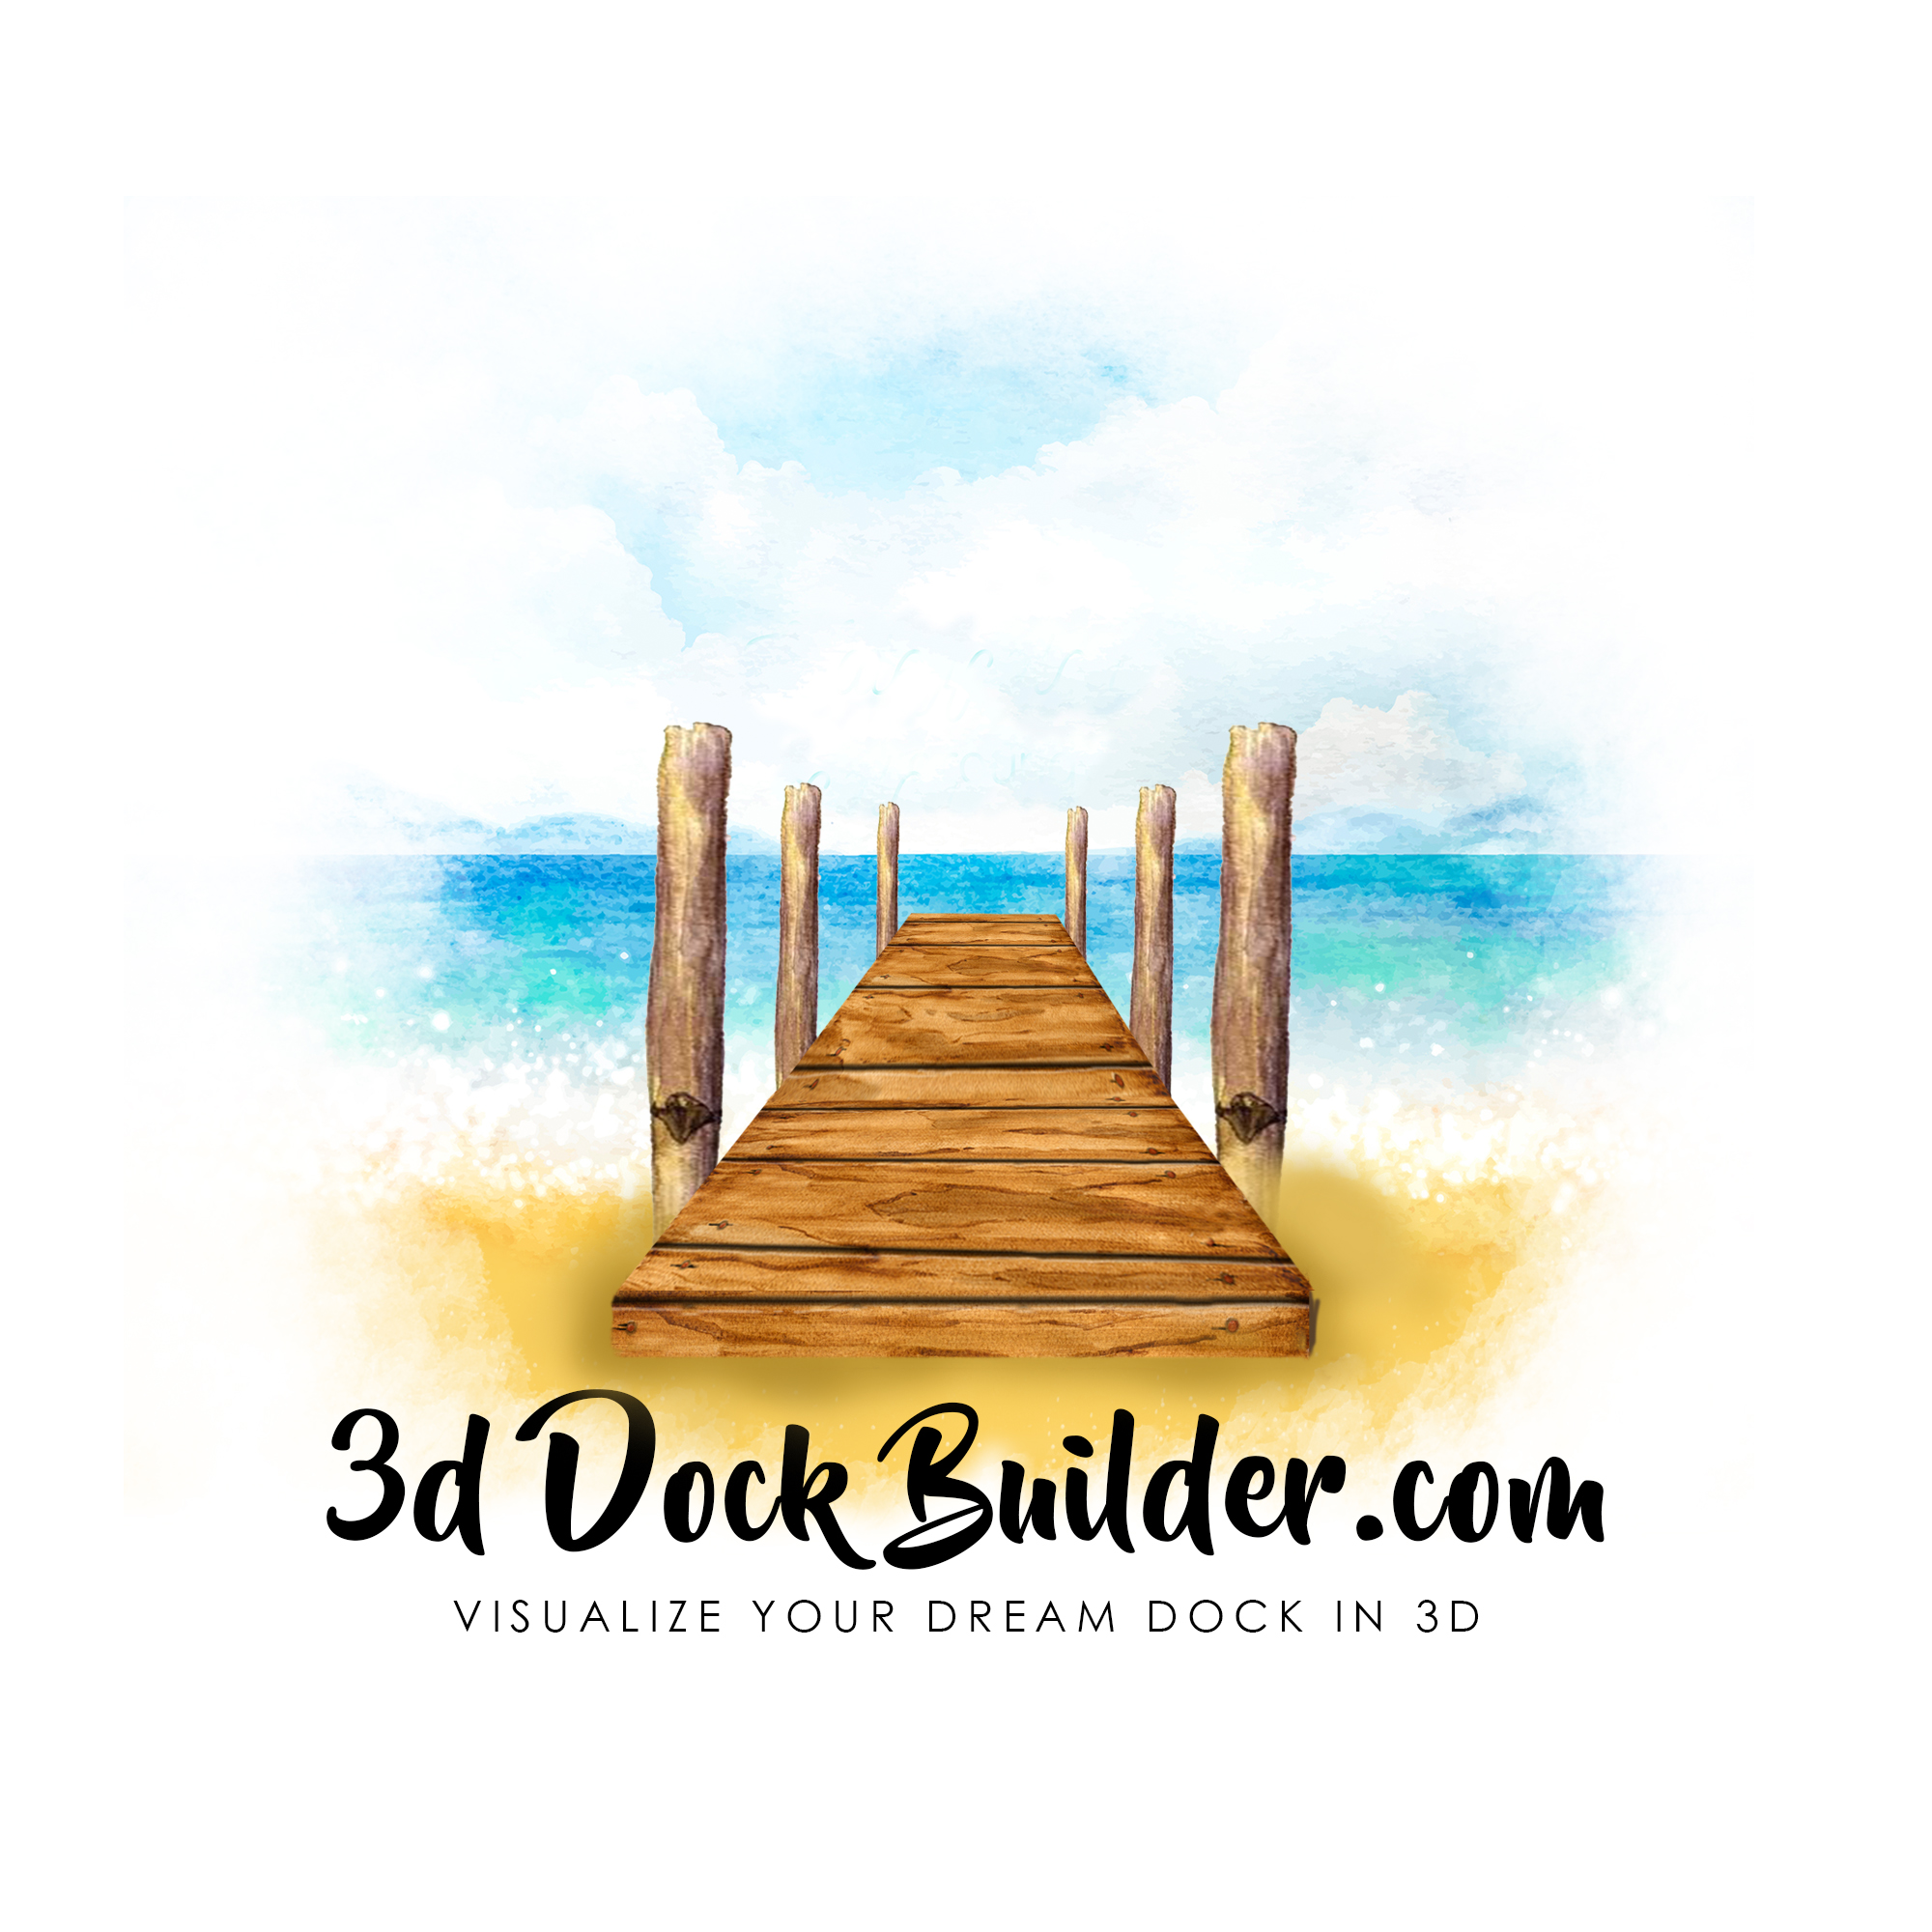 3D Dock Builder takes buying a dock to a new level with the web based dock configurator